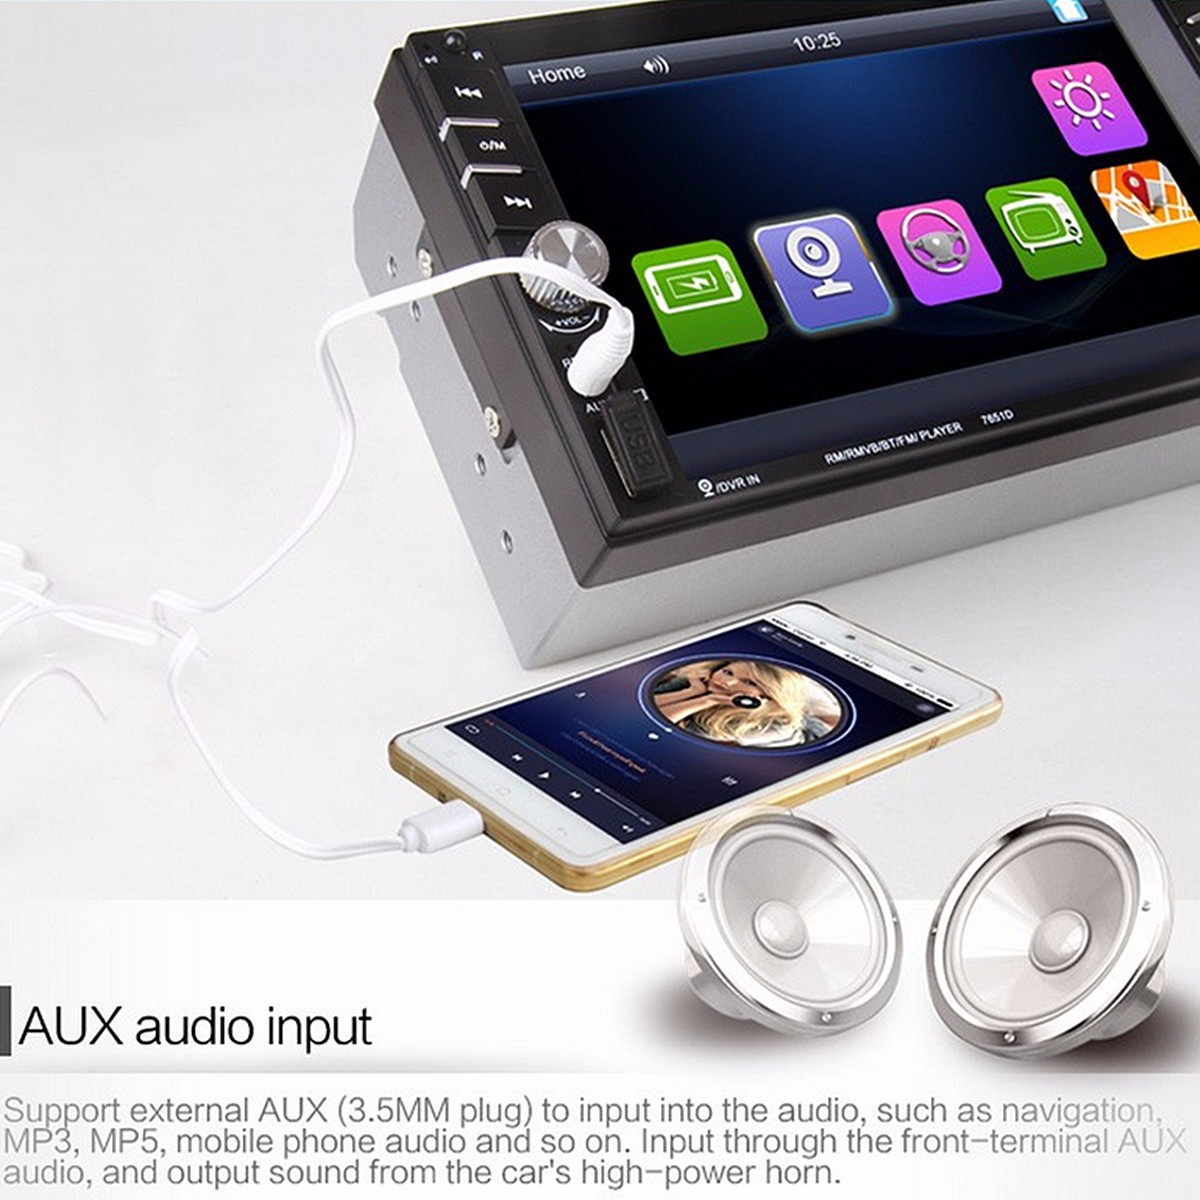 6 6 inch tft touch screen 2 din car mp5 player stereo radio with rear camera sale banggood com